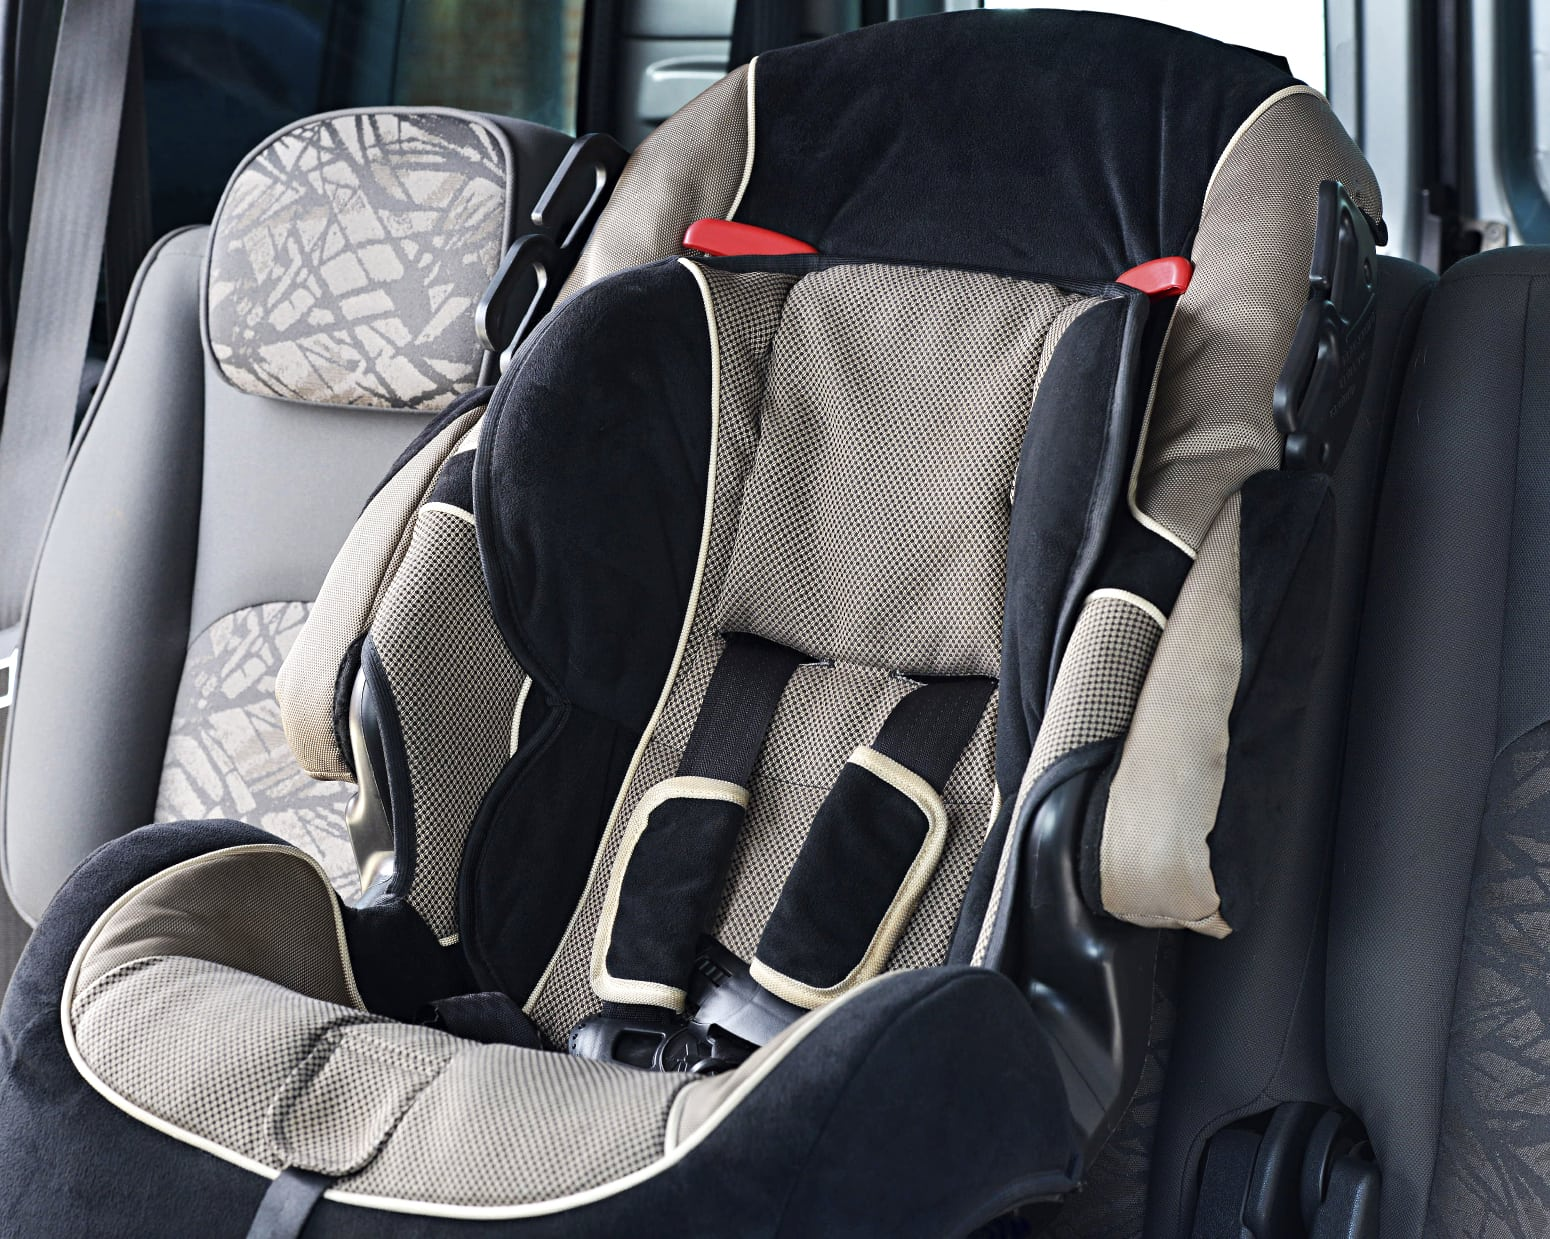 Child's Car Seat Stock Photo